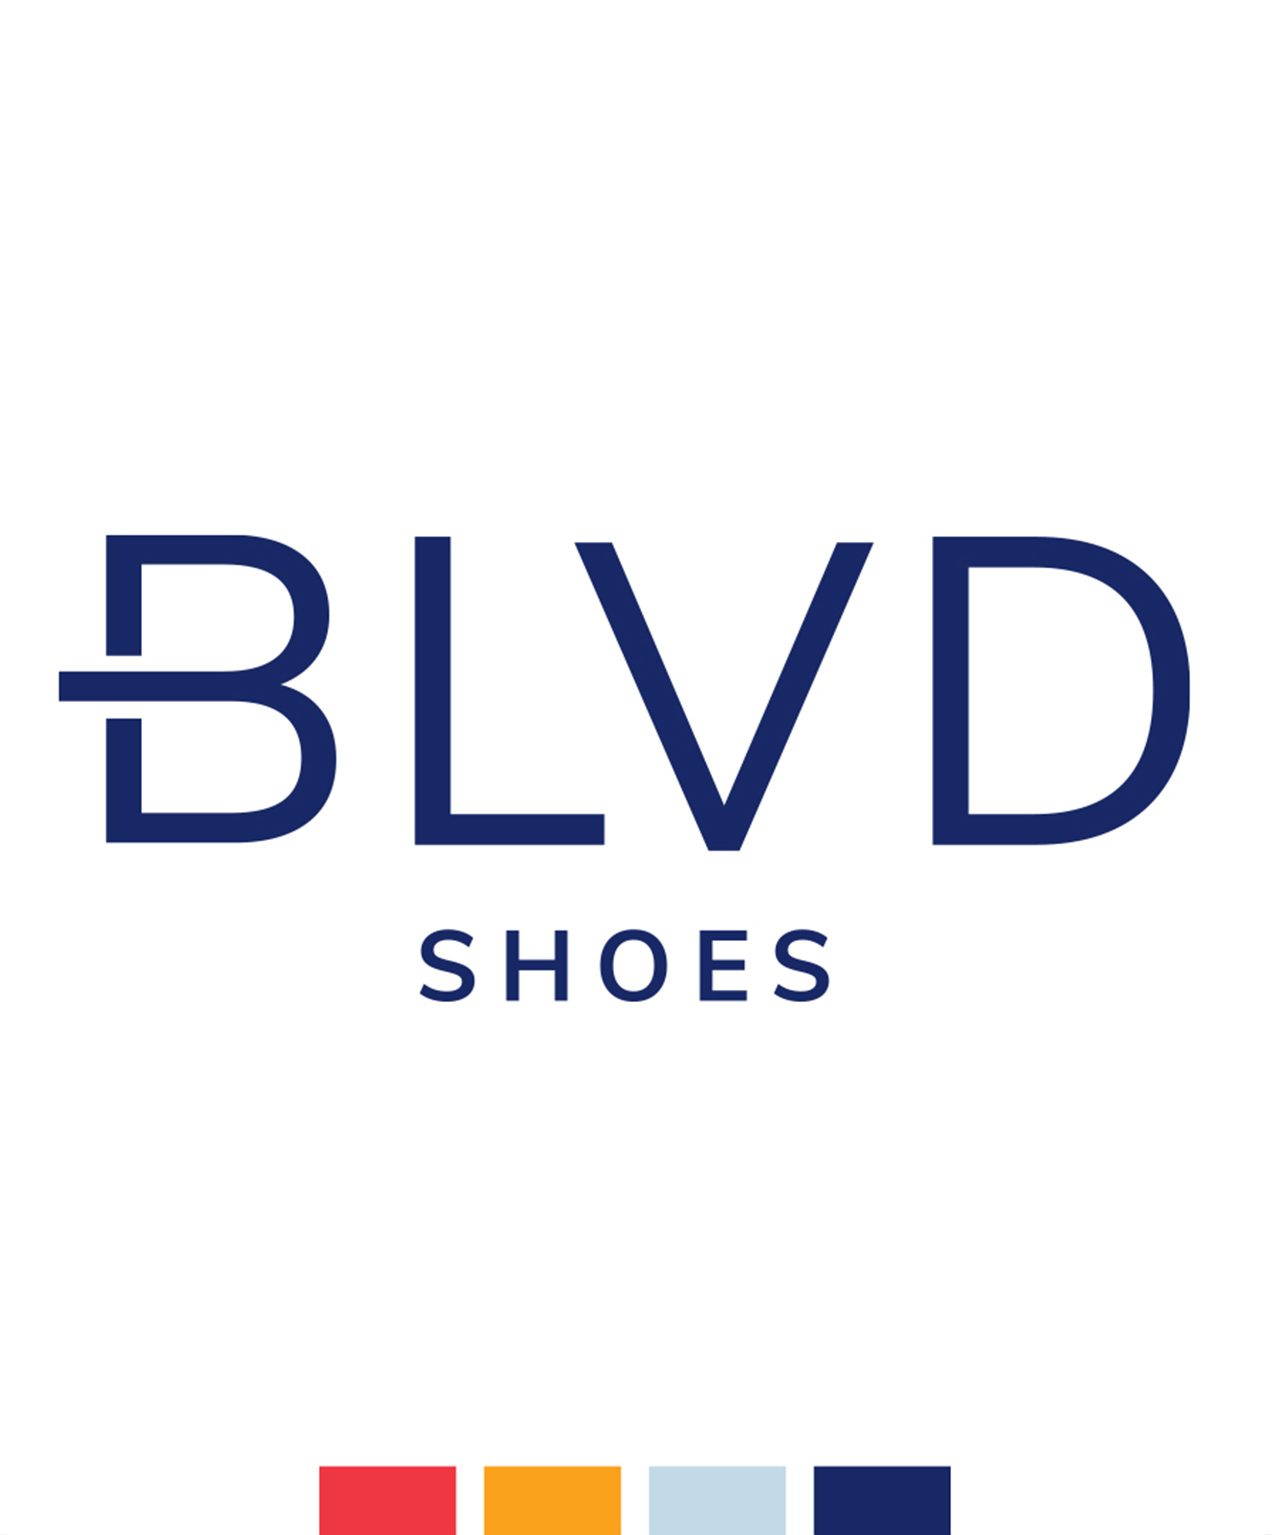 retail shoe store marketing brand logo color palette